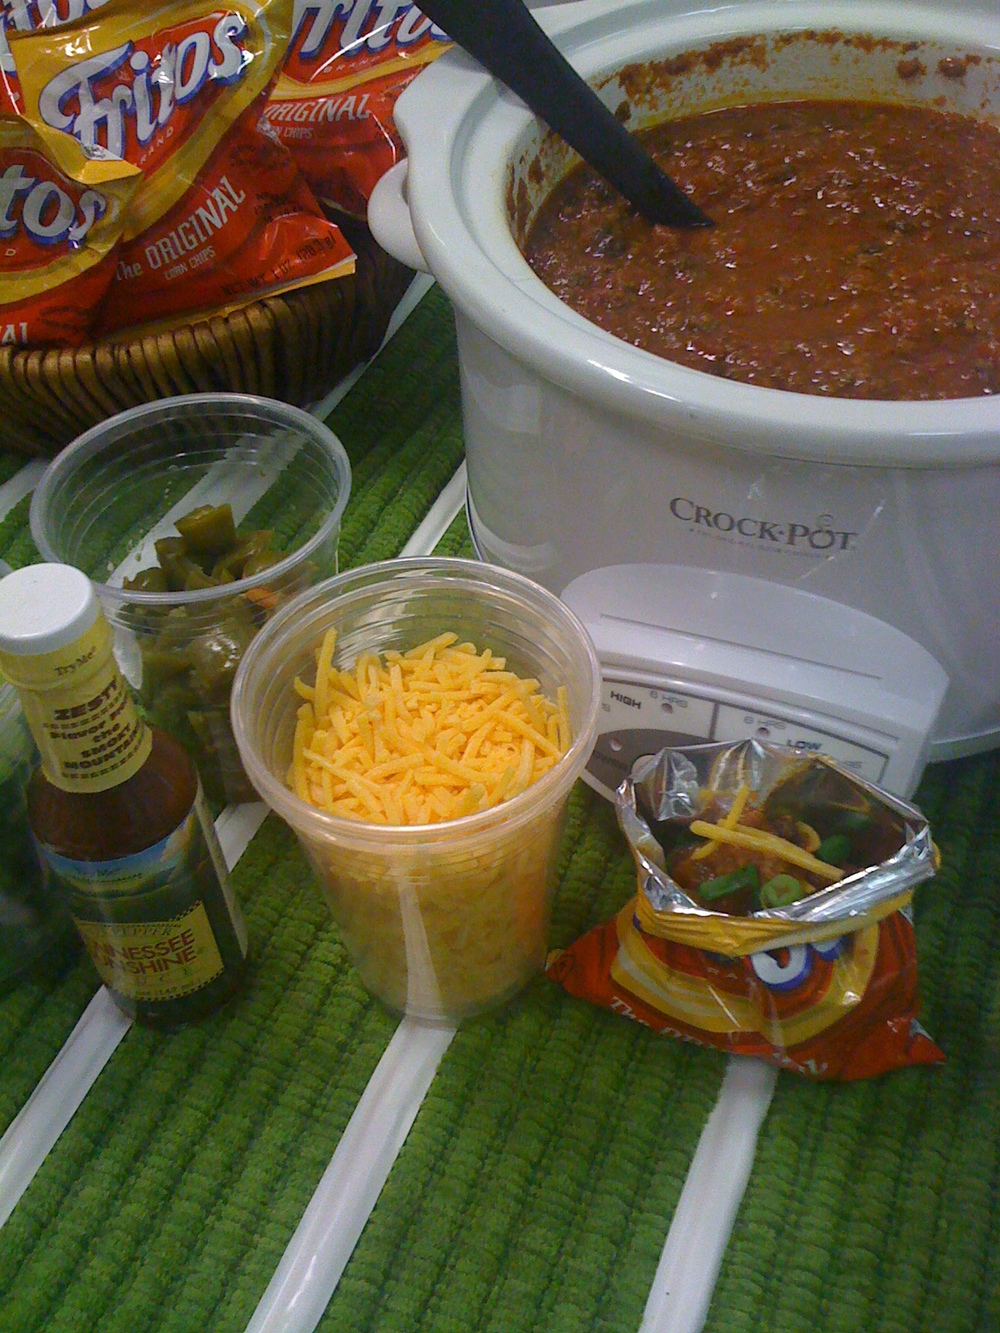 Serve your chili in individual Frito or Dorito bags... delish and no dishes!